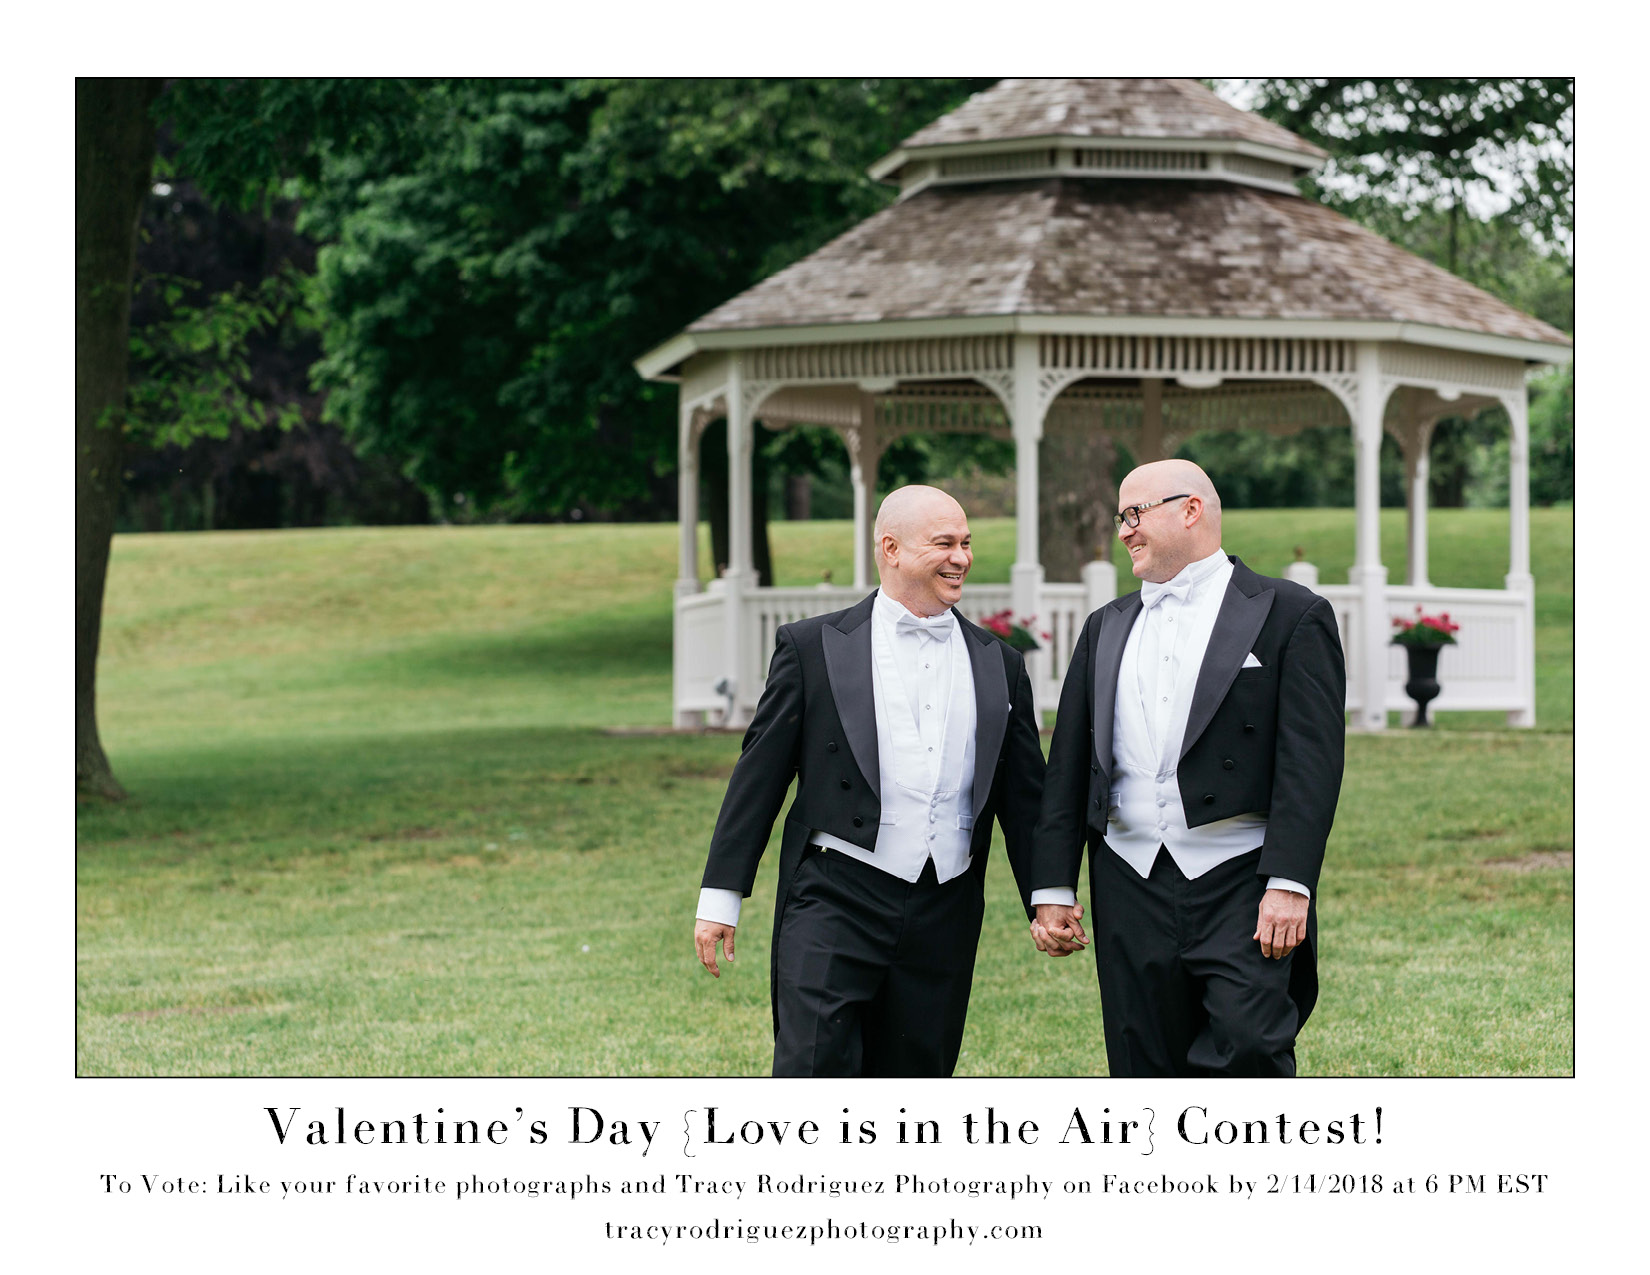 2018 Tracy Rodriguez Photography Valentine's Day Promo3.jpg